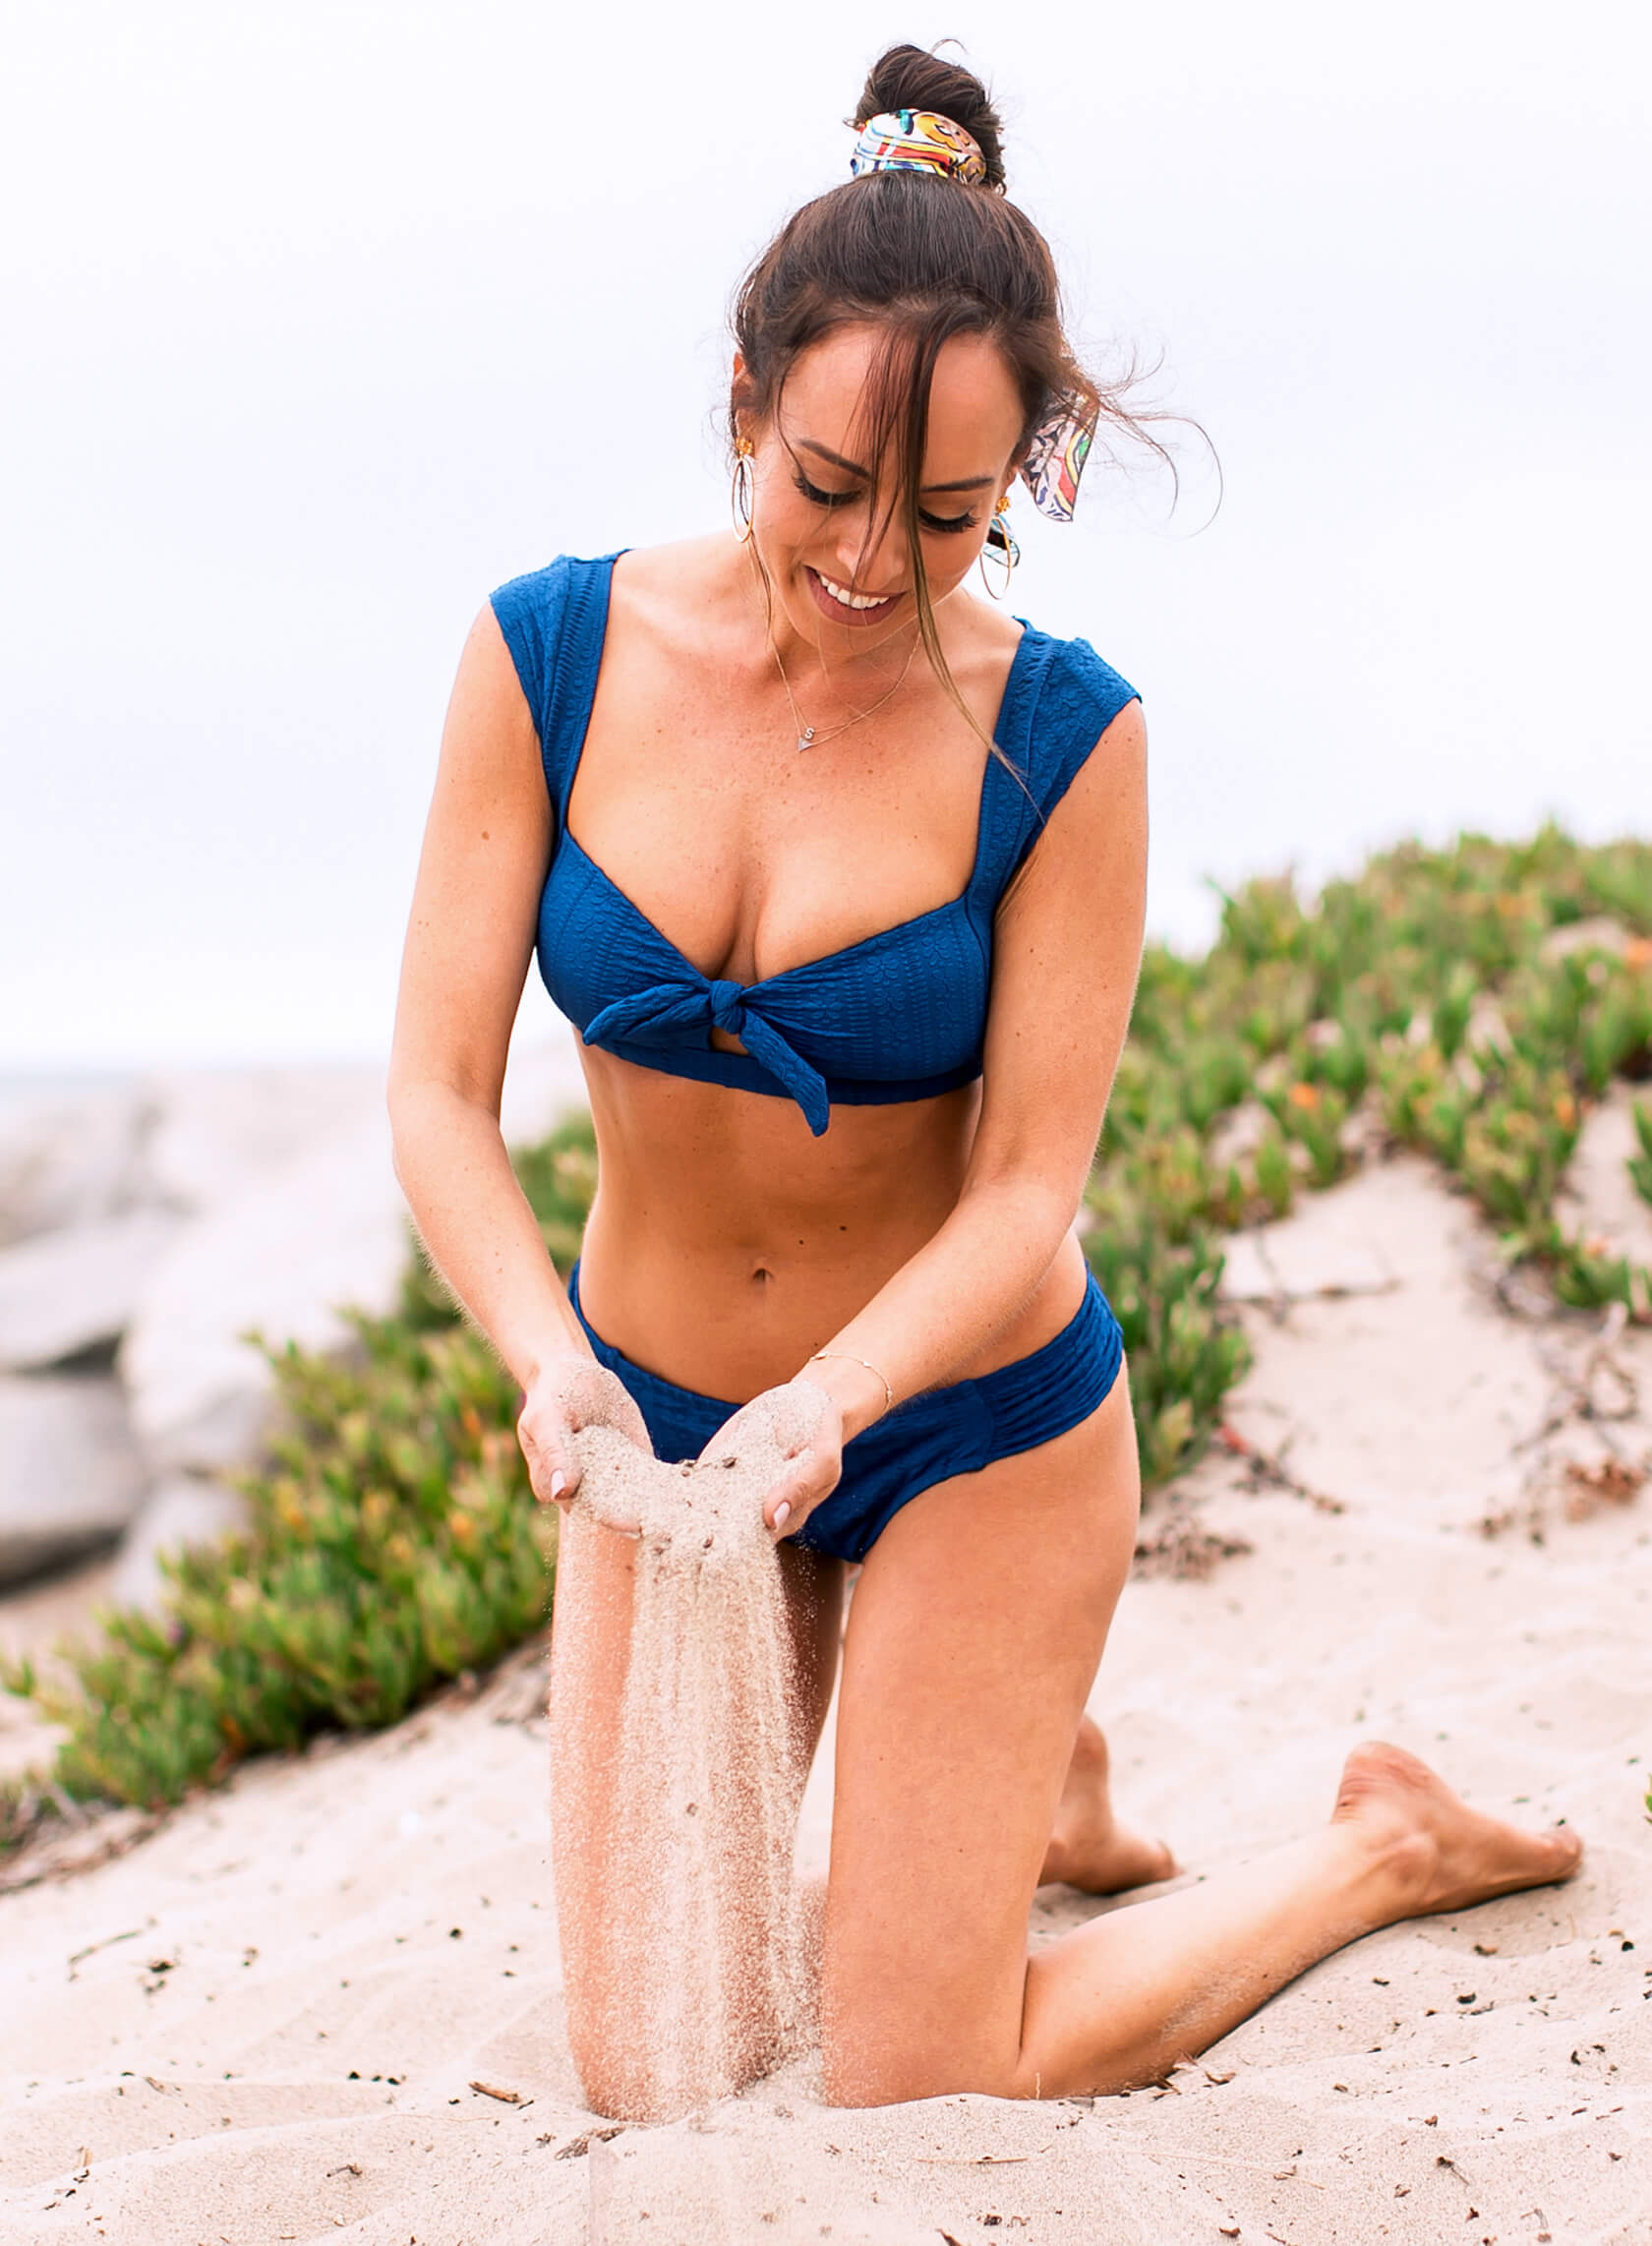 Sydne Style wears kenneth cole blue bikini for beach photos in malibu